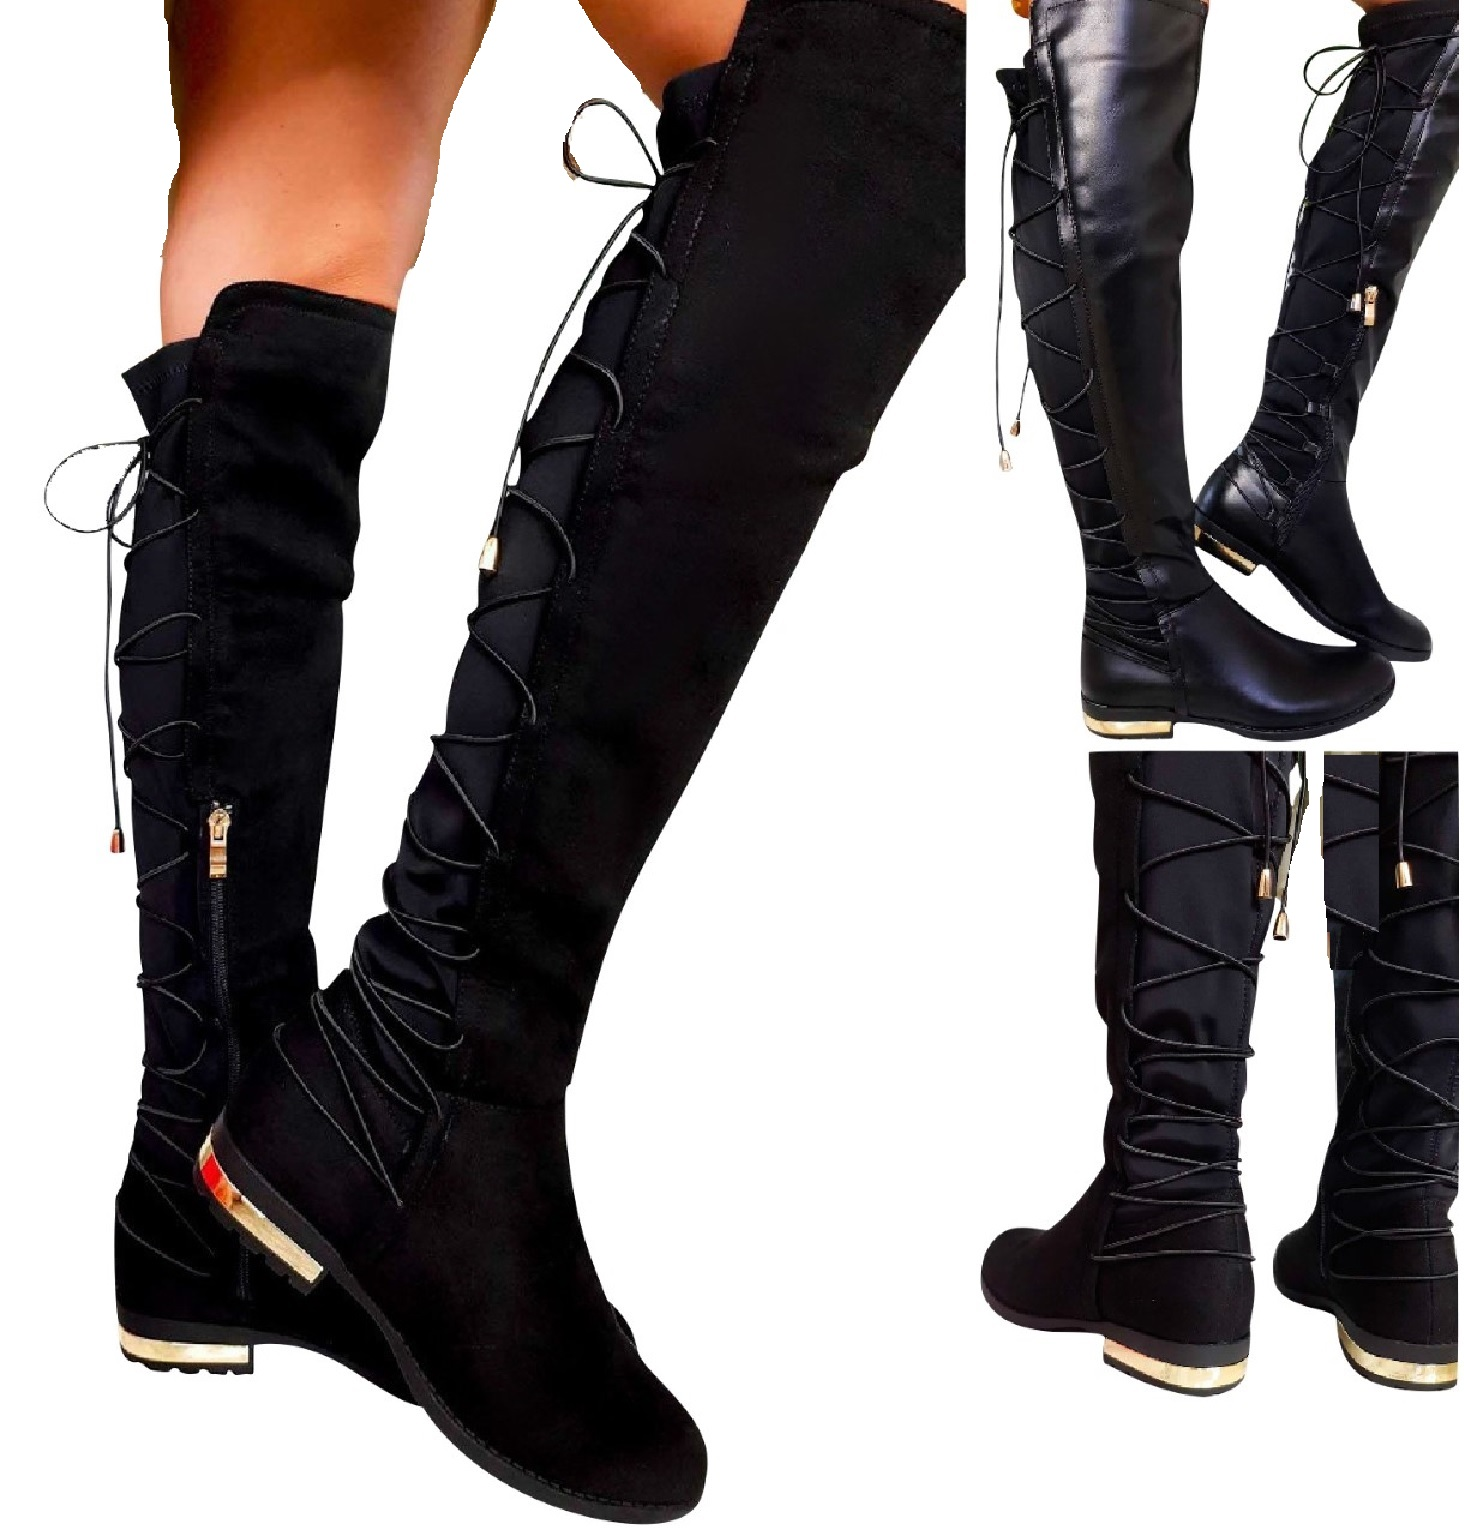 outlet sale large assortment outlet store Details about LADIES WOMENS FLAT STRETCHY ELASTIC OVER THE KNEE HIGH LACE  UP ZIP BOOTS UK SIZE